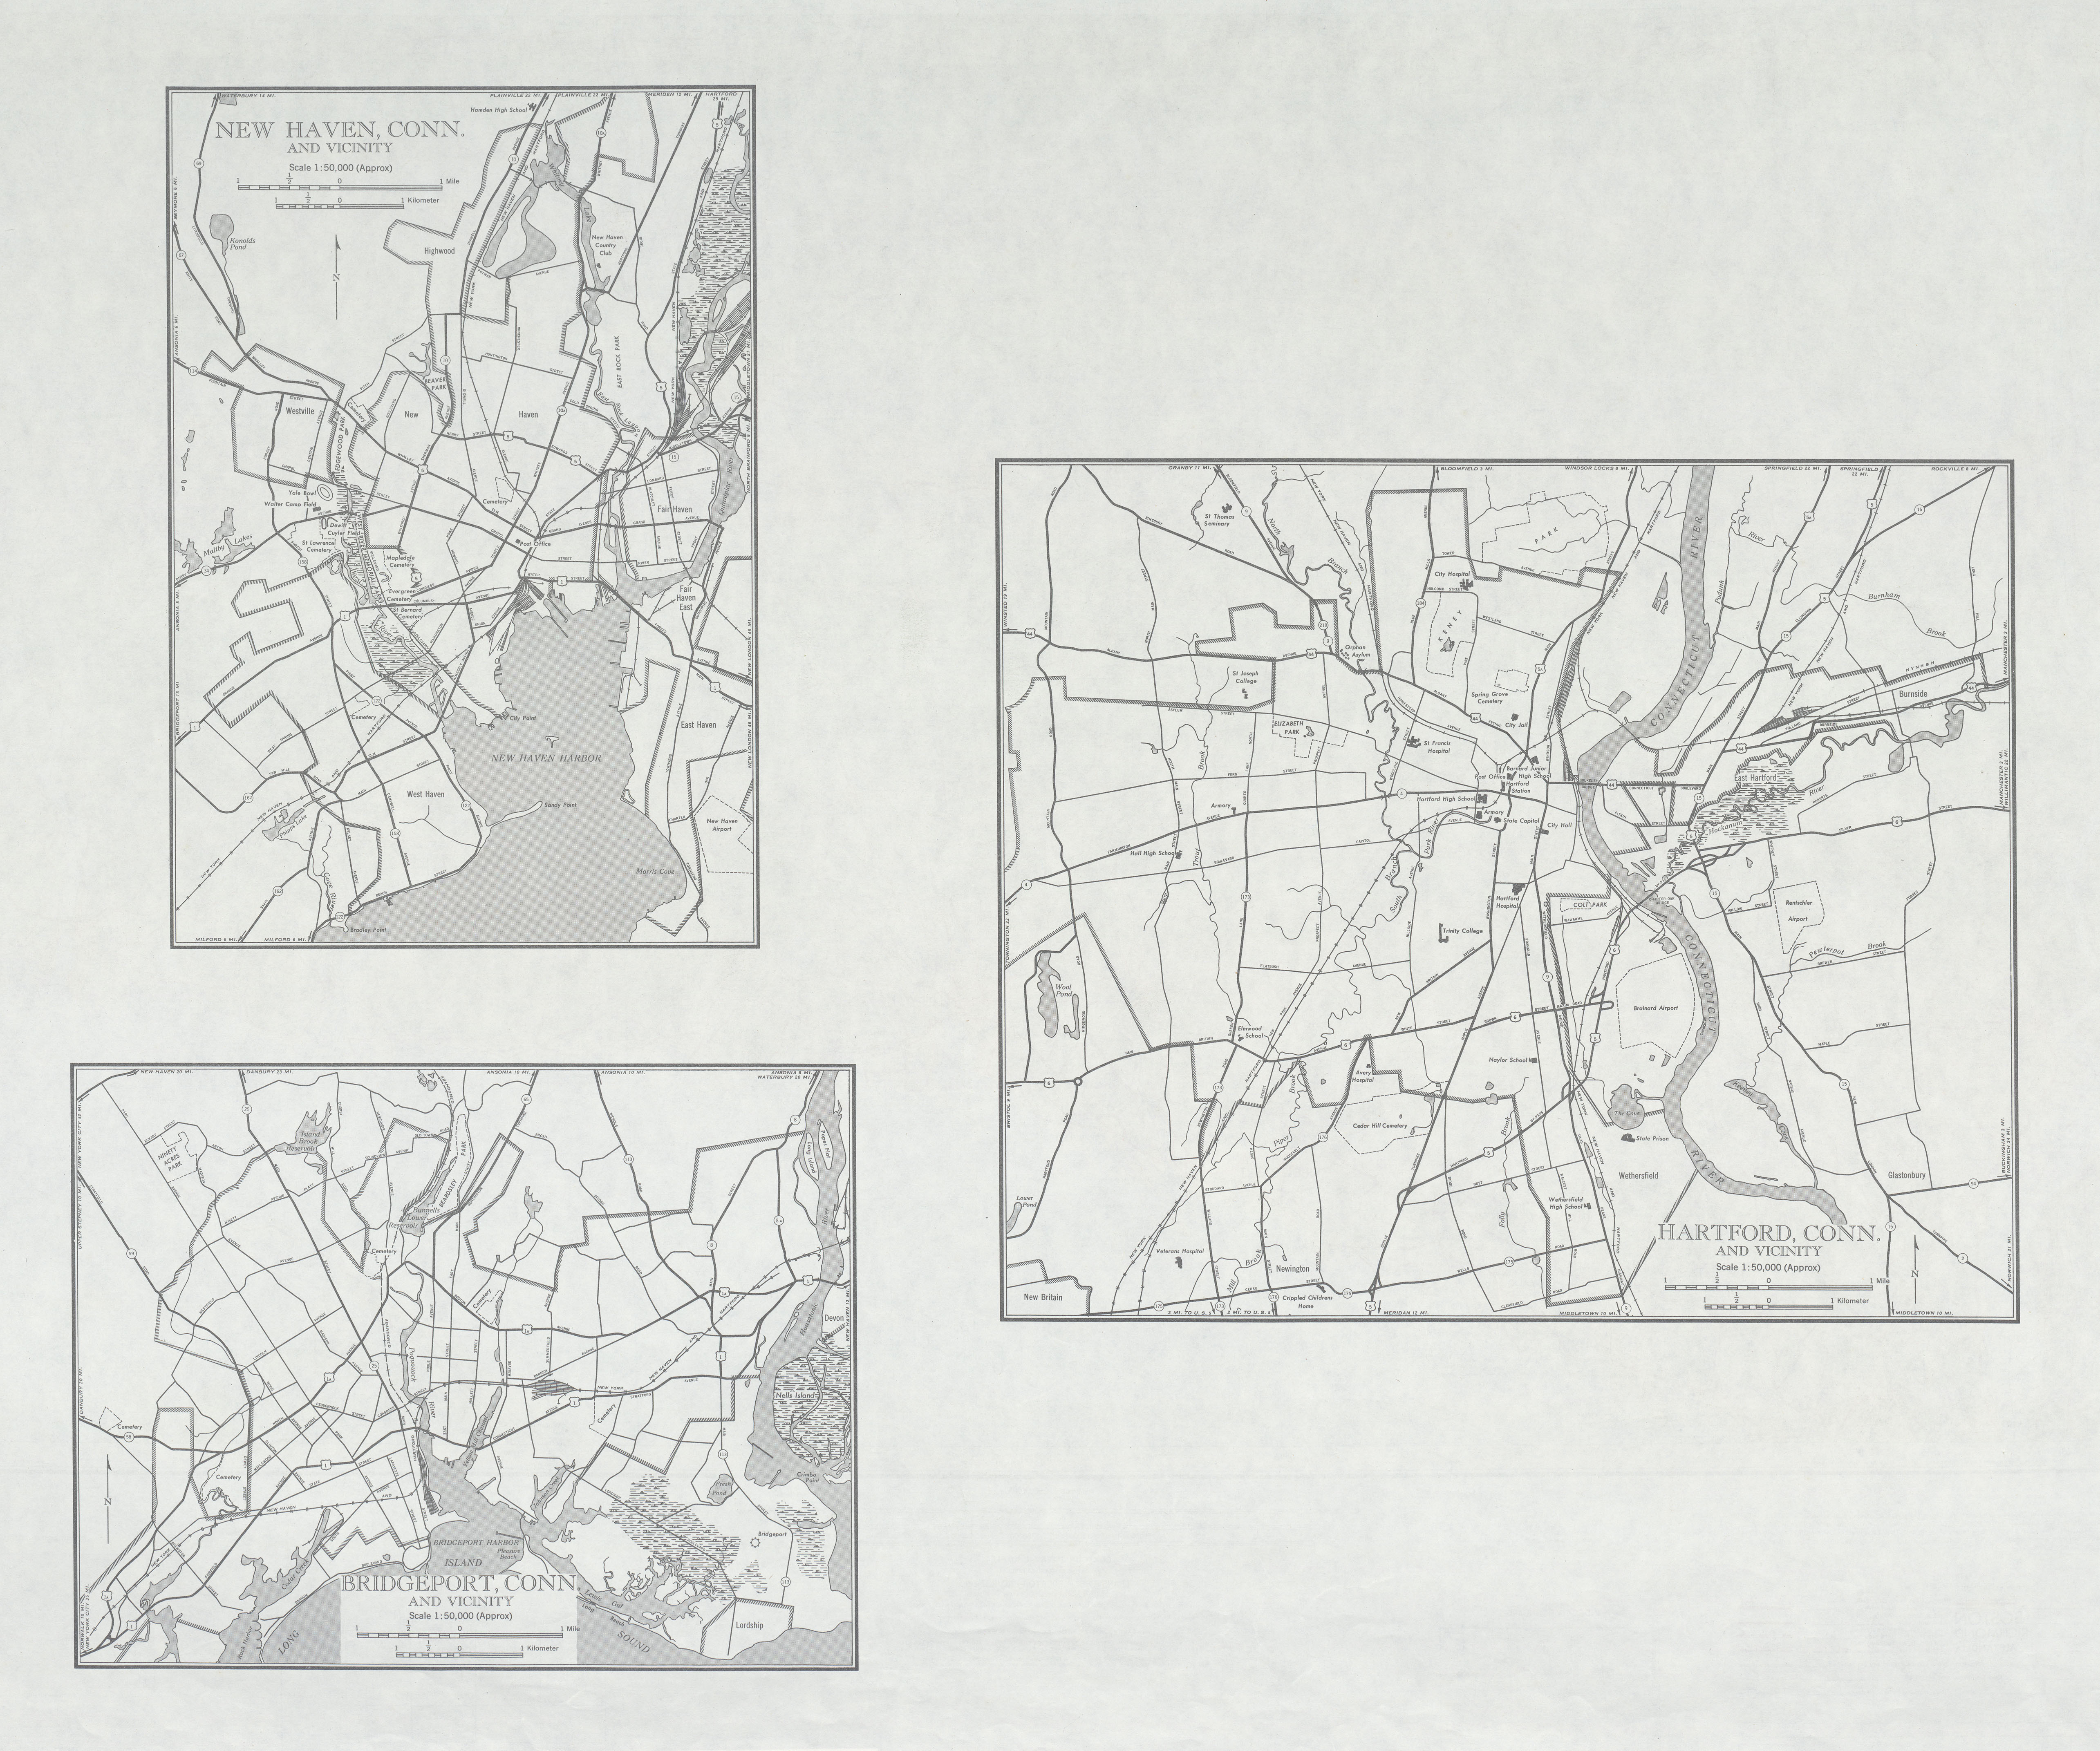 City Maps of New Haven, Bridgeport, Hartford, and Vicinity, Connecticut, United States 1946